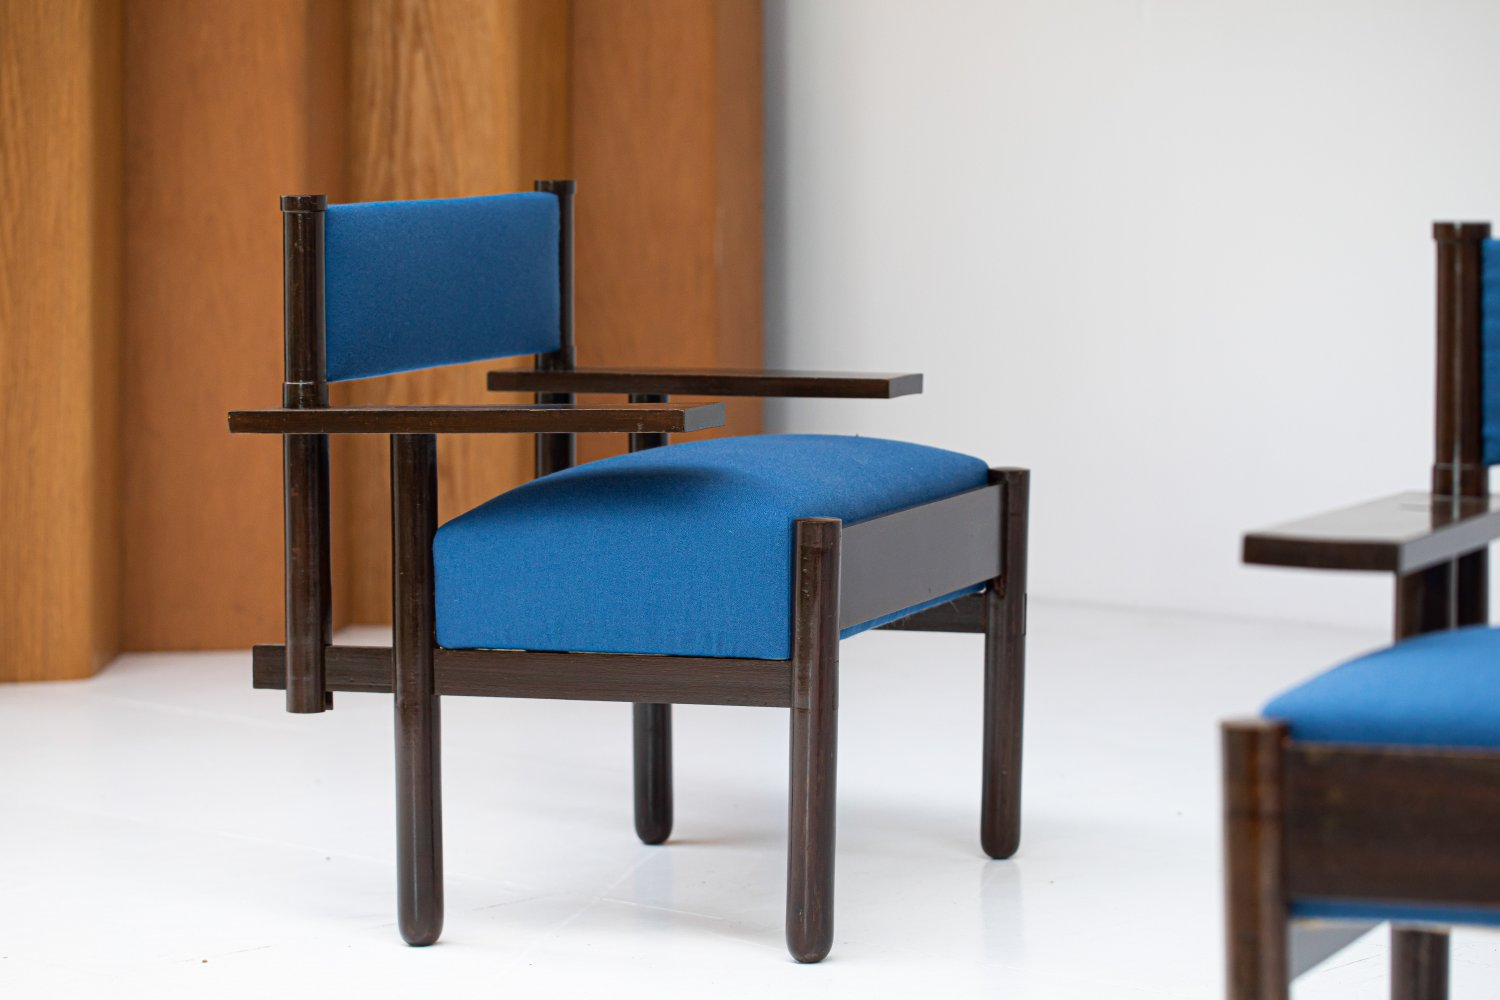 Pair of unknown chairs